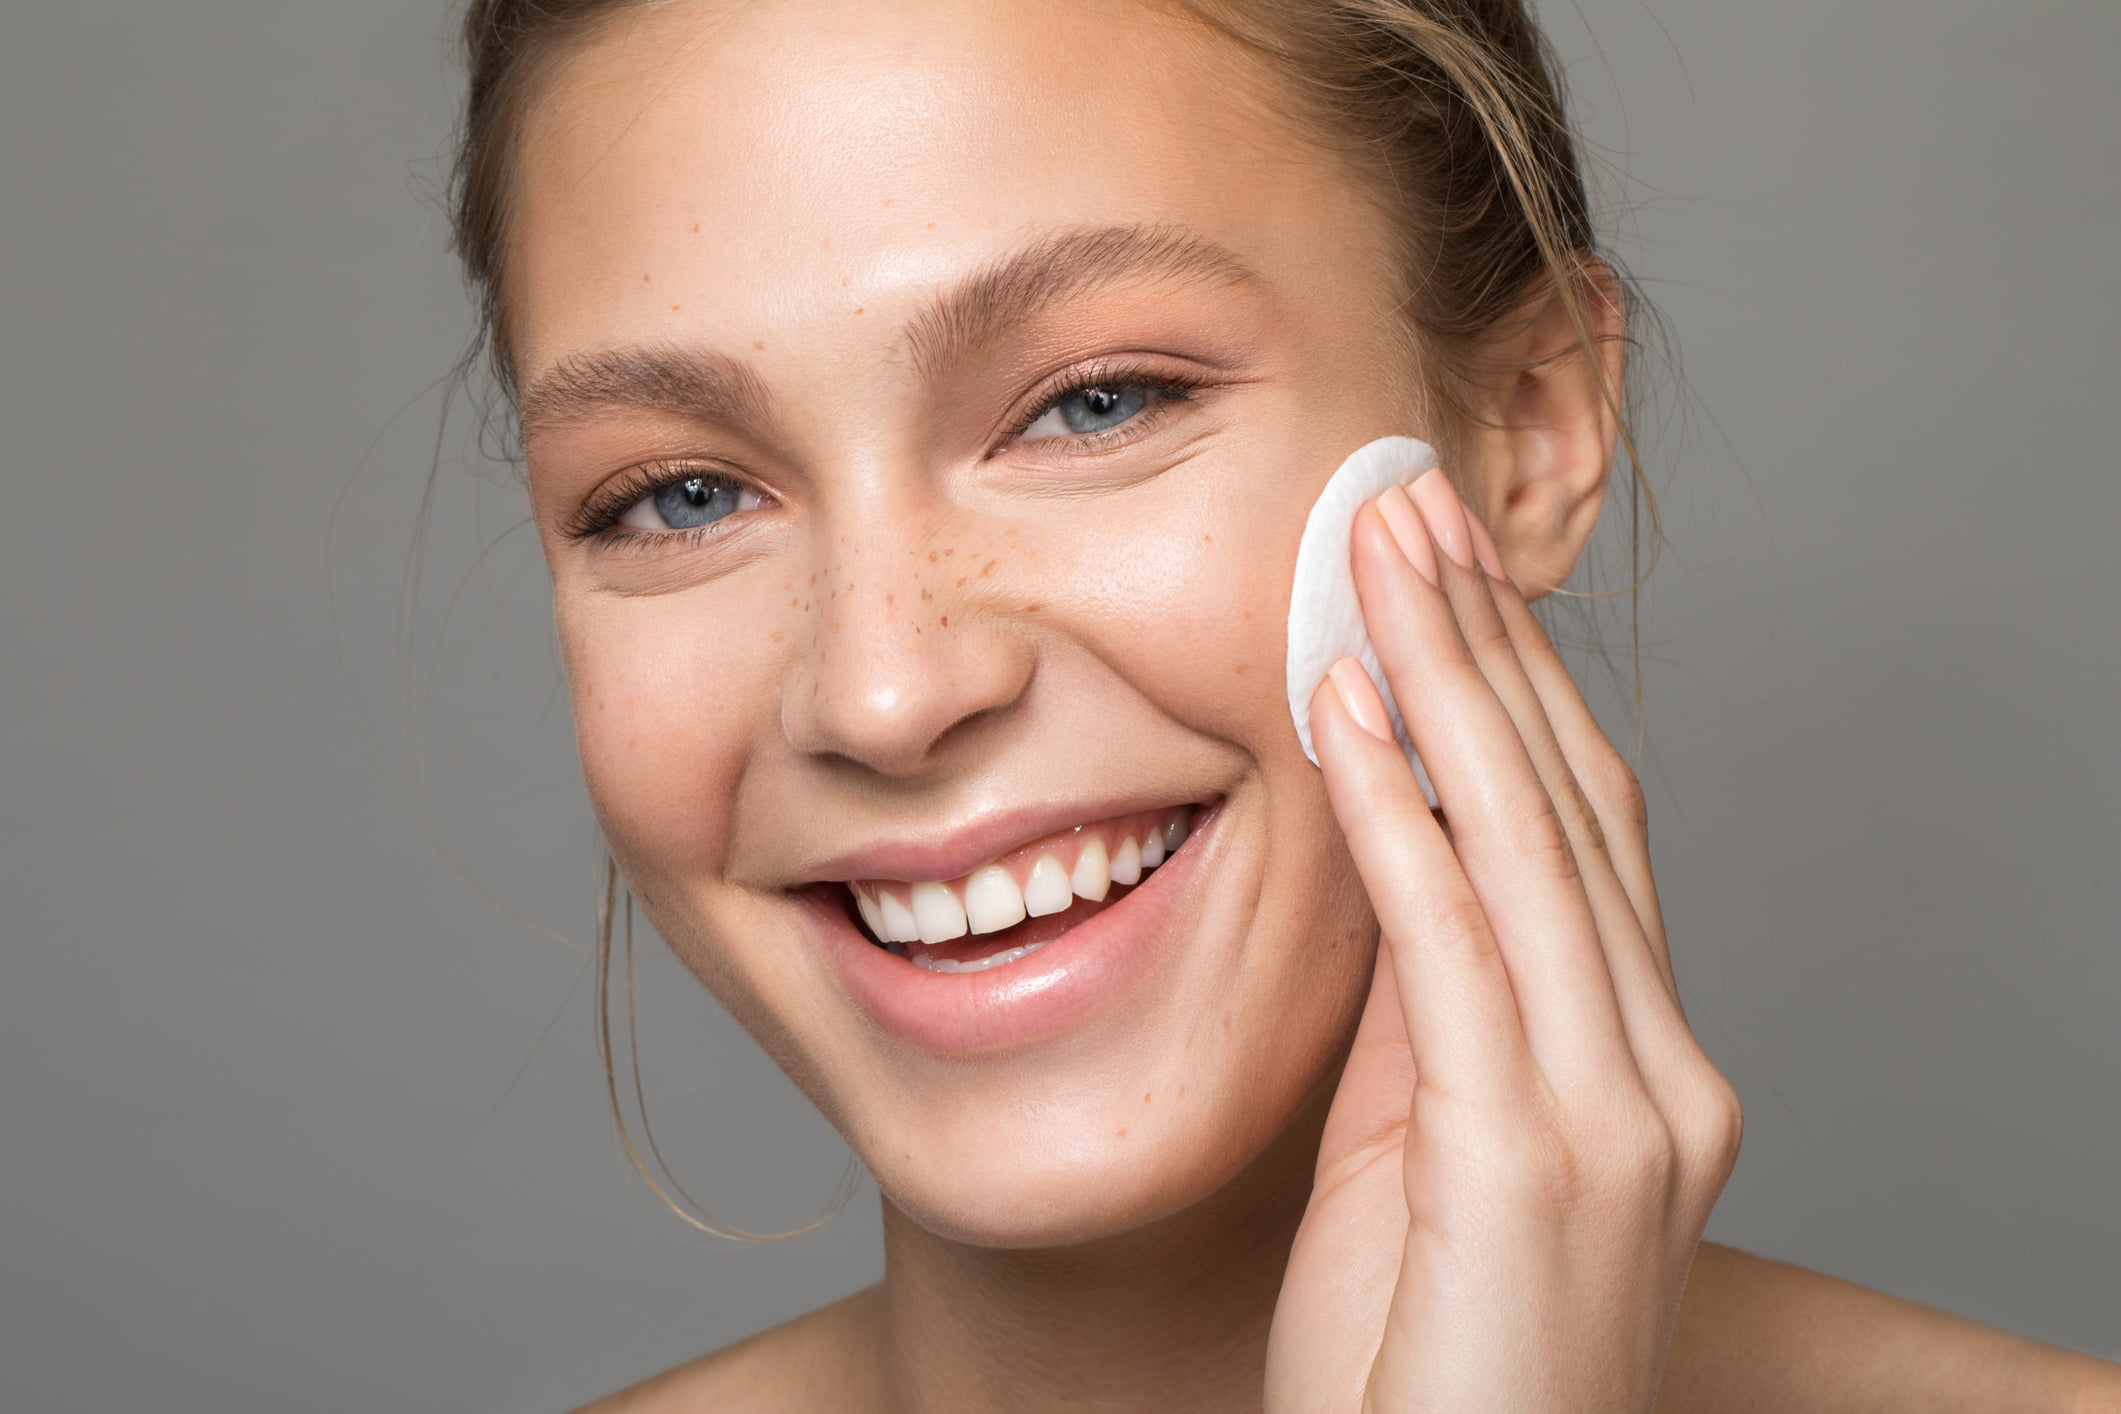 A pretty woman is applying a skincare product on her face